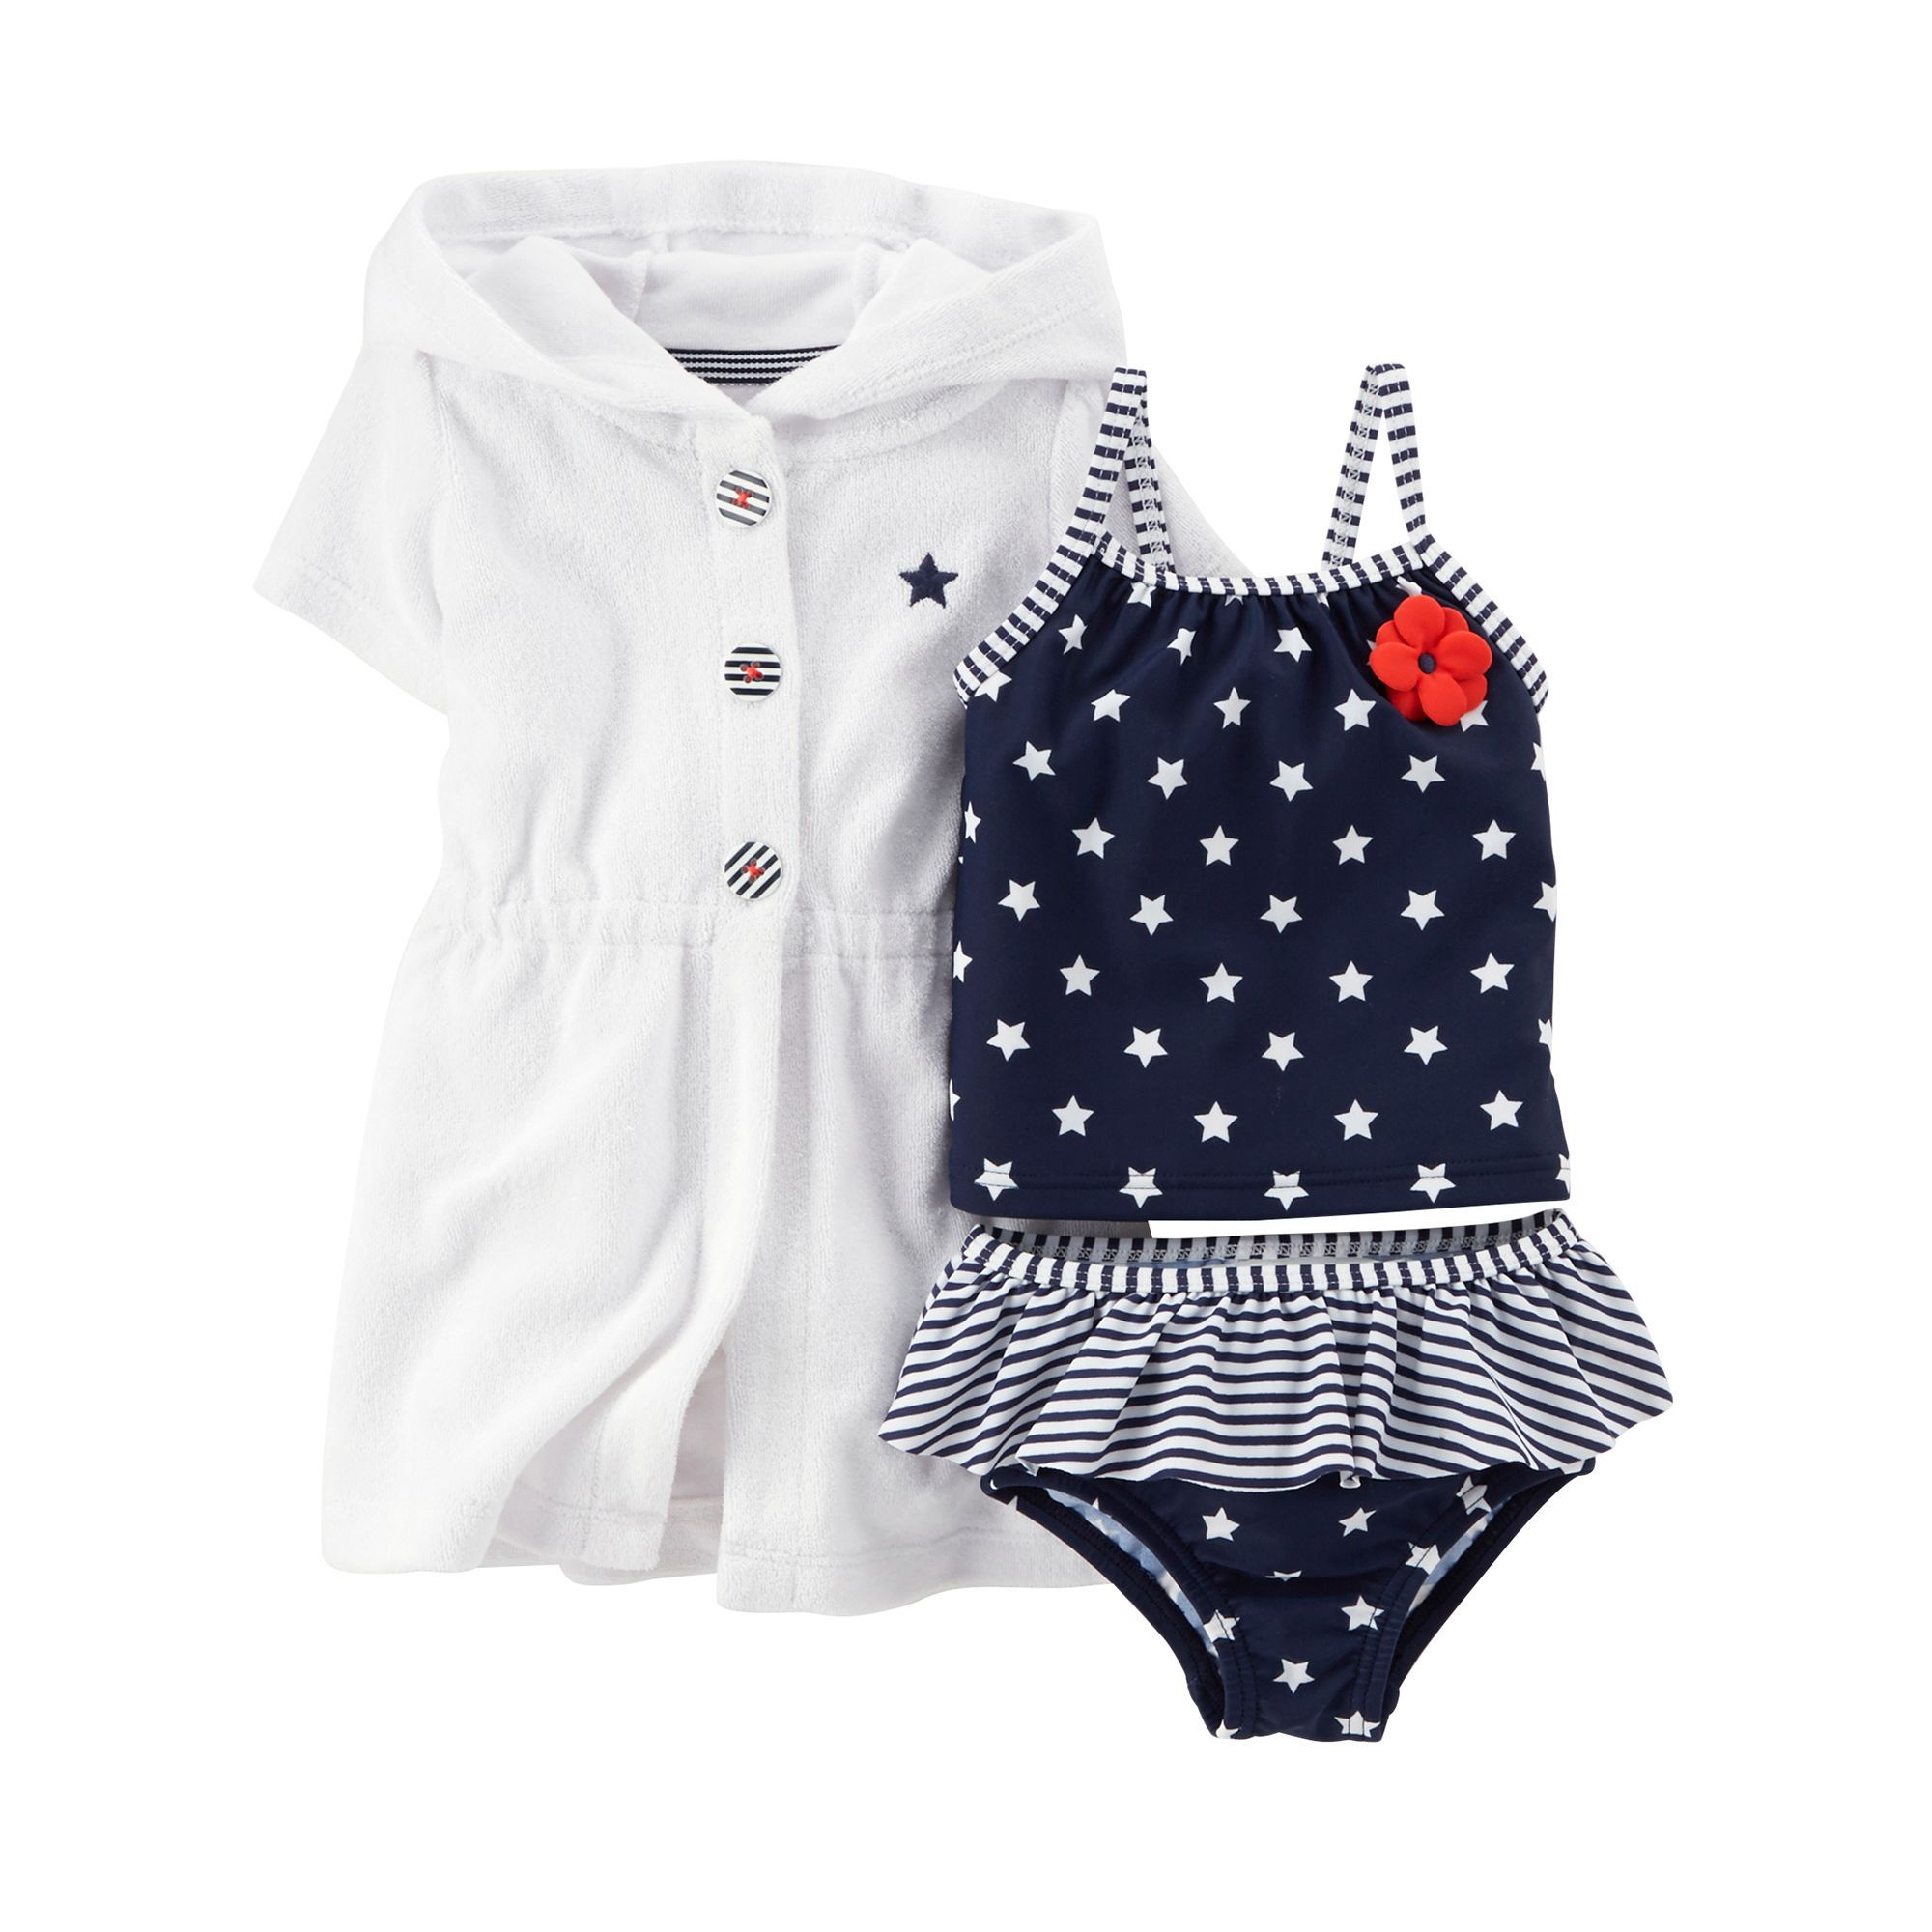 74dddeb7f4 Carter s® Baby Girls  4th Of July 3-Piece Tankini   Cover Up Swimsuit Set